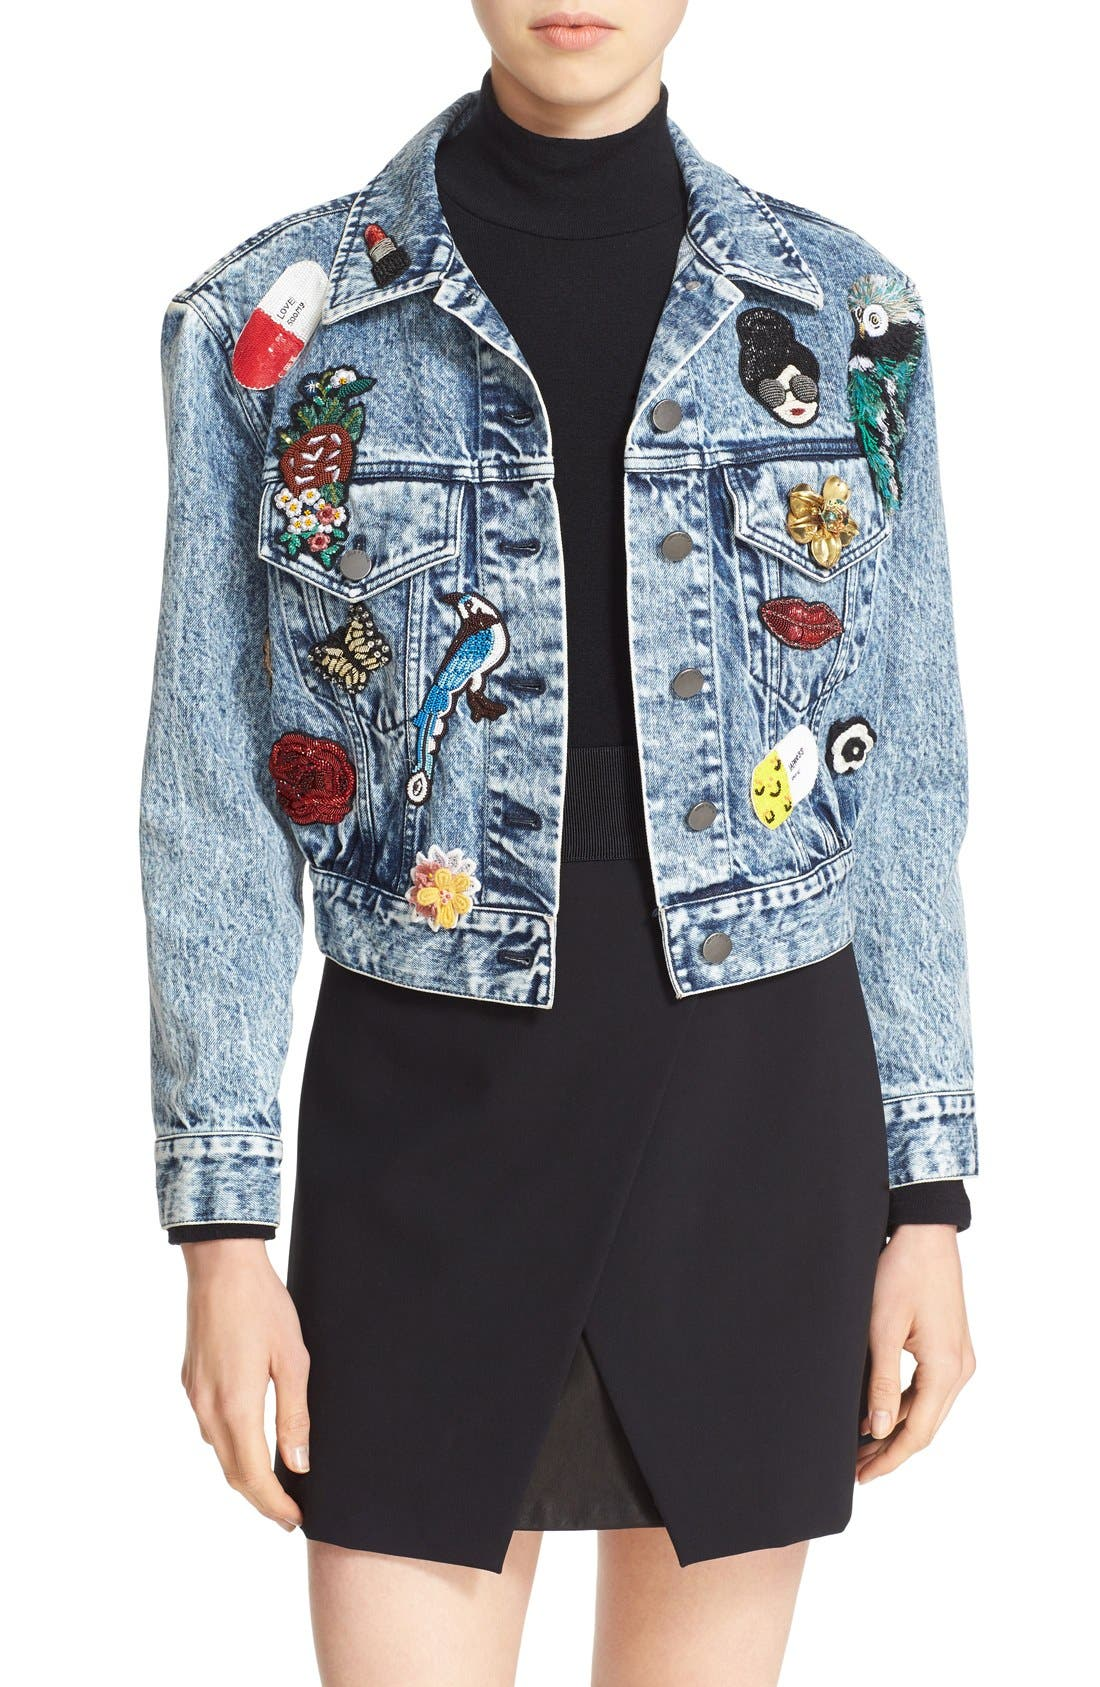 Alternate Image 1 Selected - Alice + Olivia 'Chloe' Embellished Crop Denim Jacket